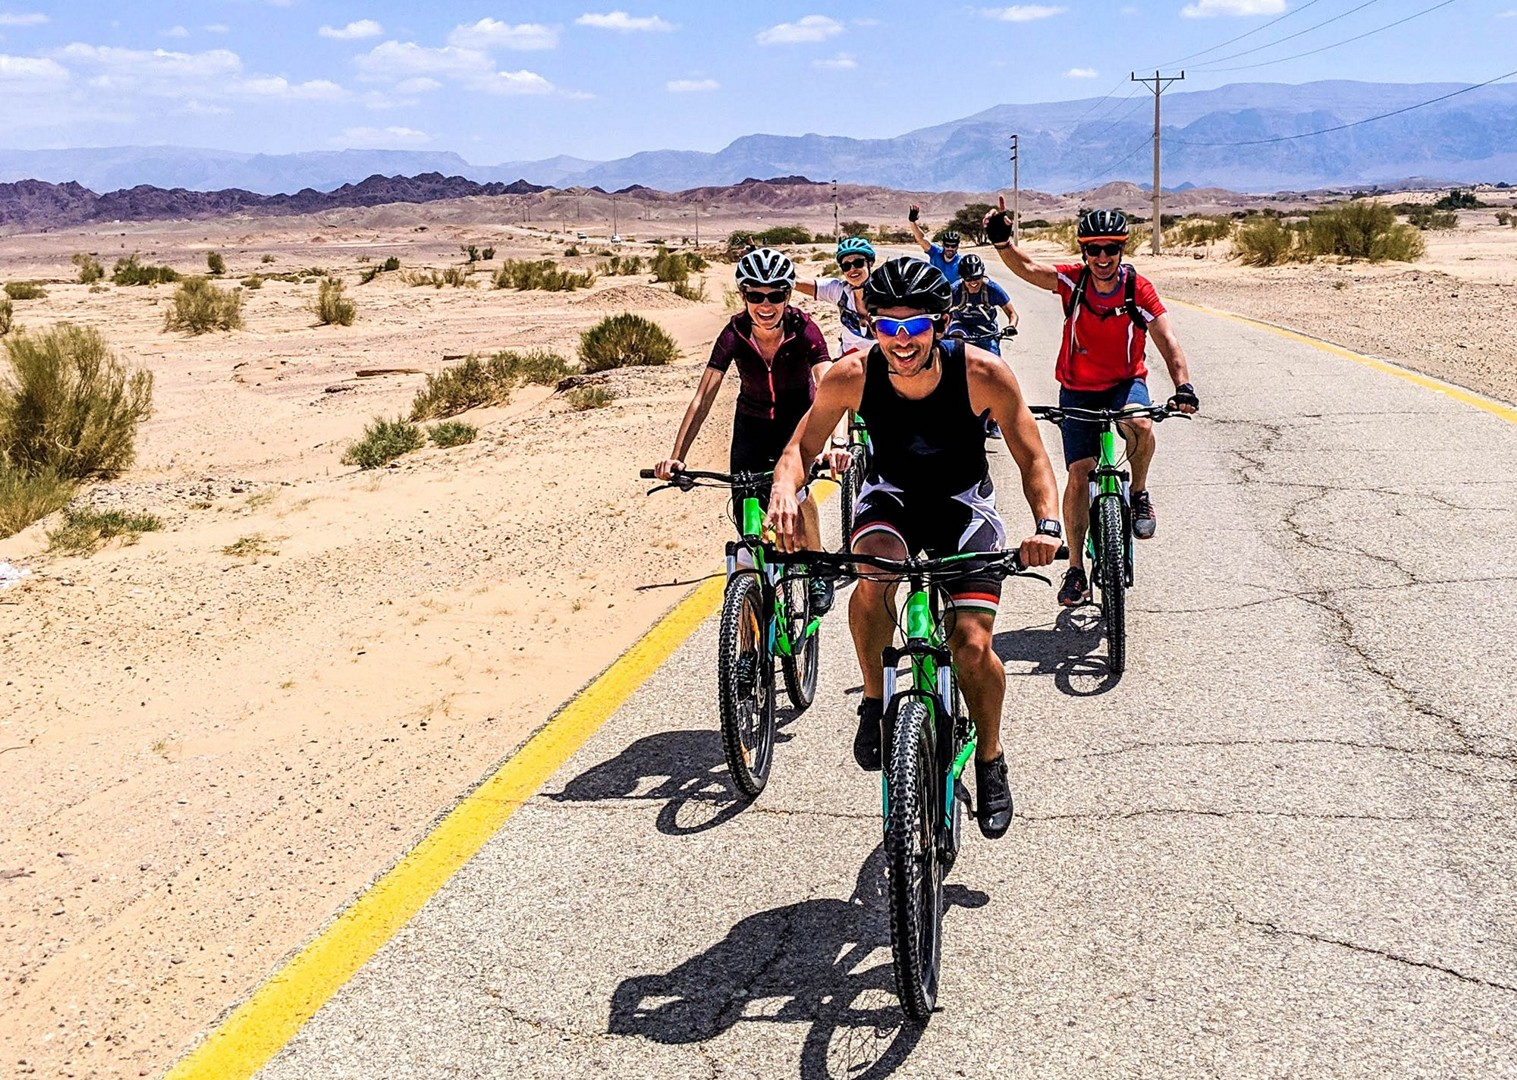 group-cycling-jordan-riding-guided-holiday-adventures.jpg - NEW! Jordan - Petra, Wadi Rum & the Dead Sea - Cycling Adventures